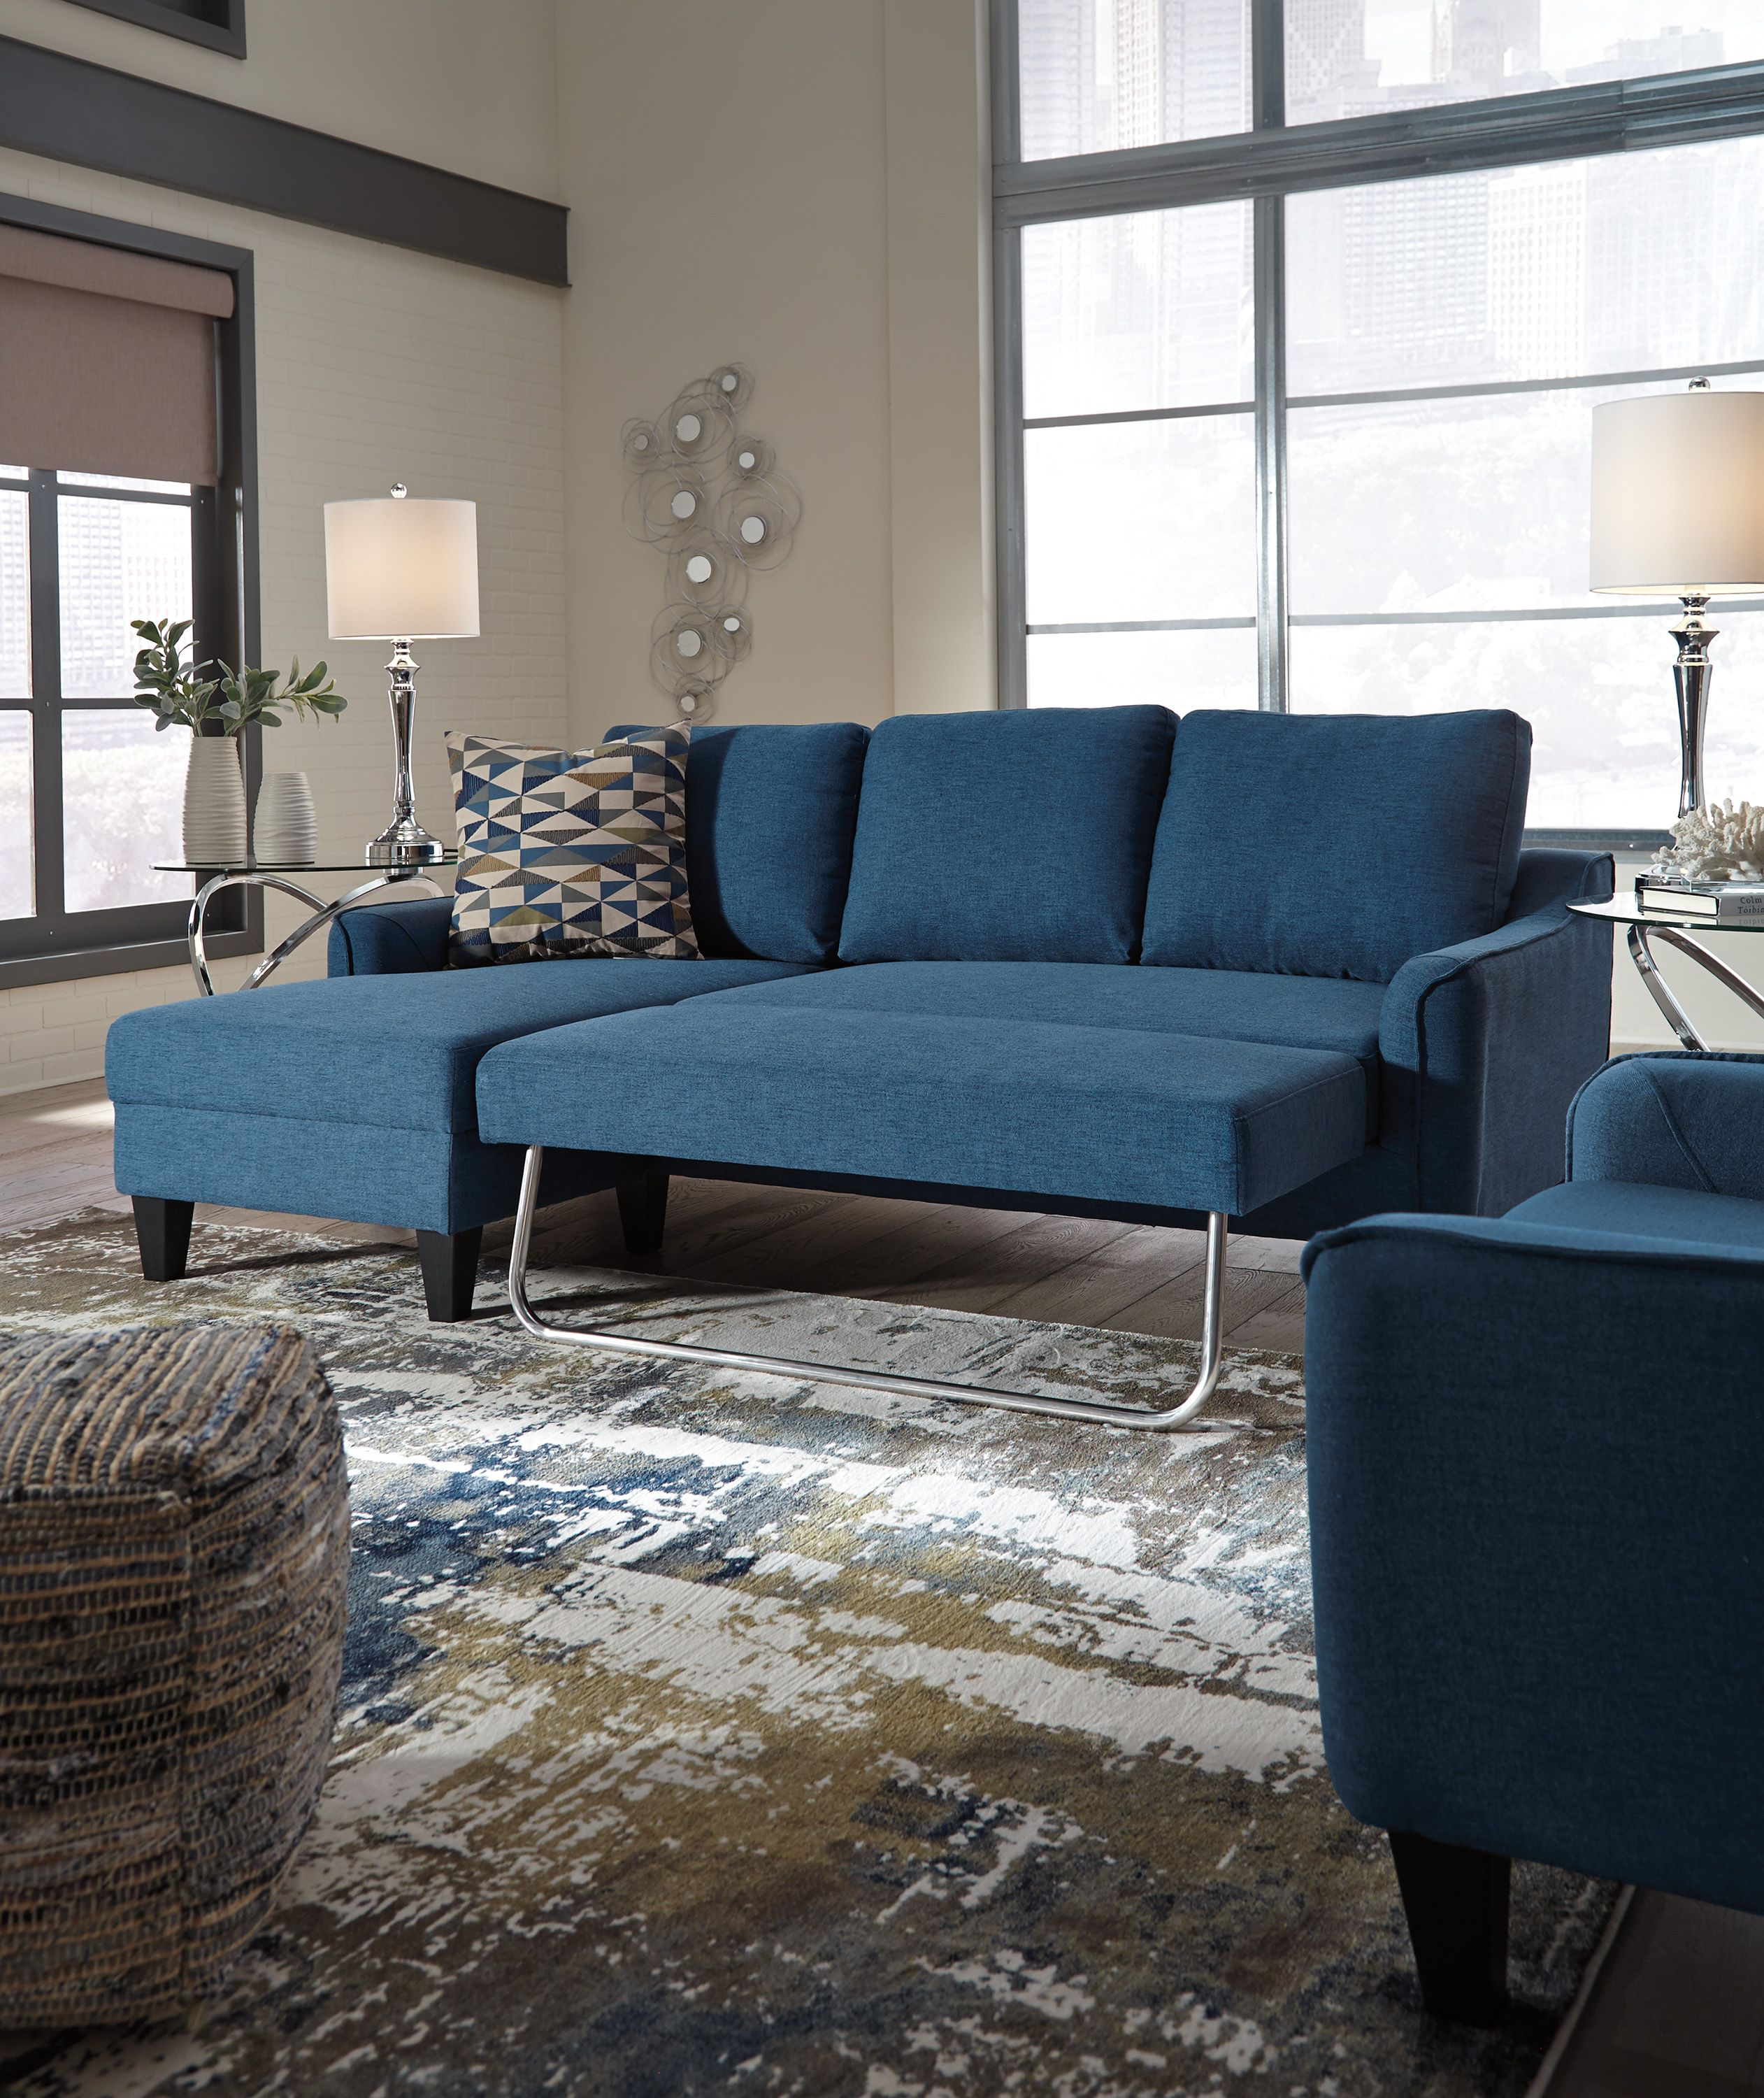 Jarreau Queen Sofa Sleeper Sectional Sleeper Sofa Sleeper Sofa Queen Sofa Sleeper